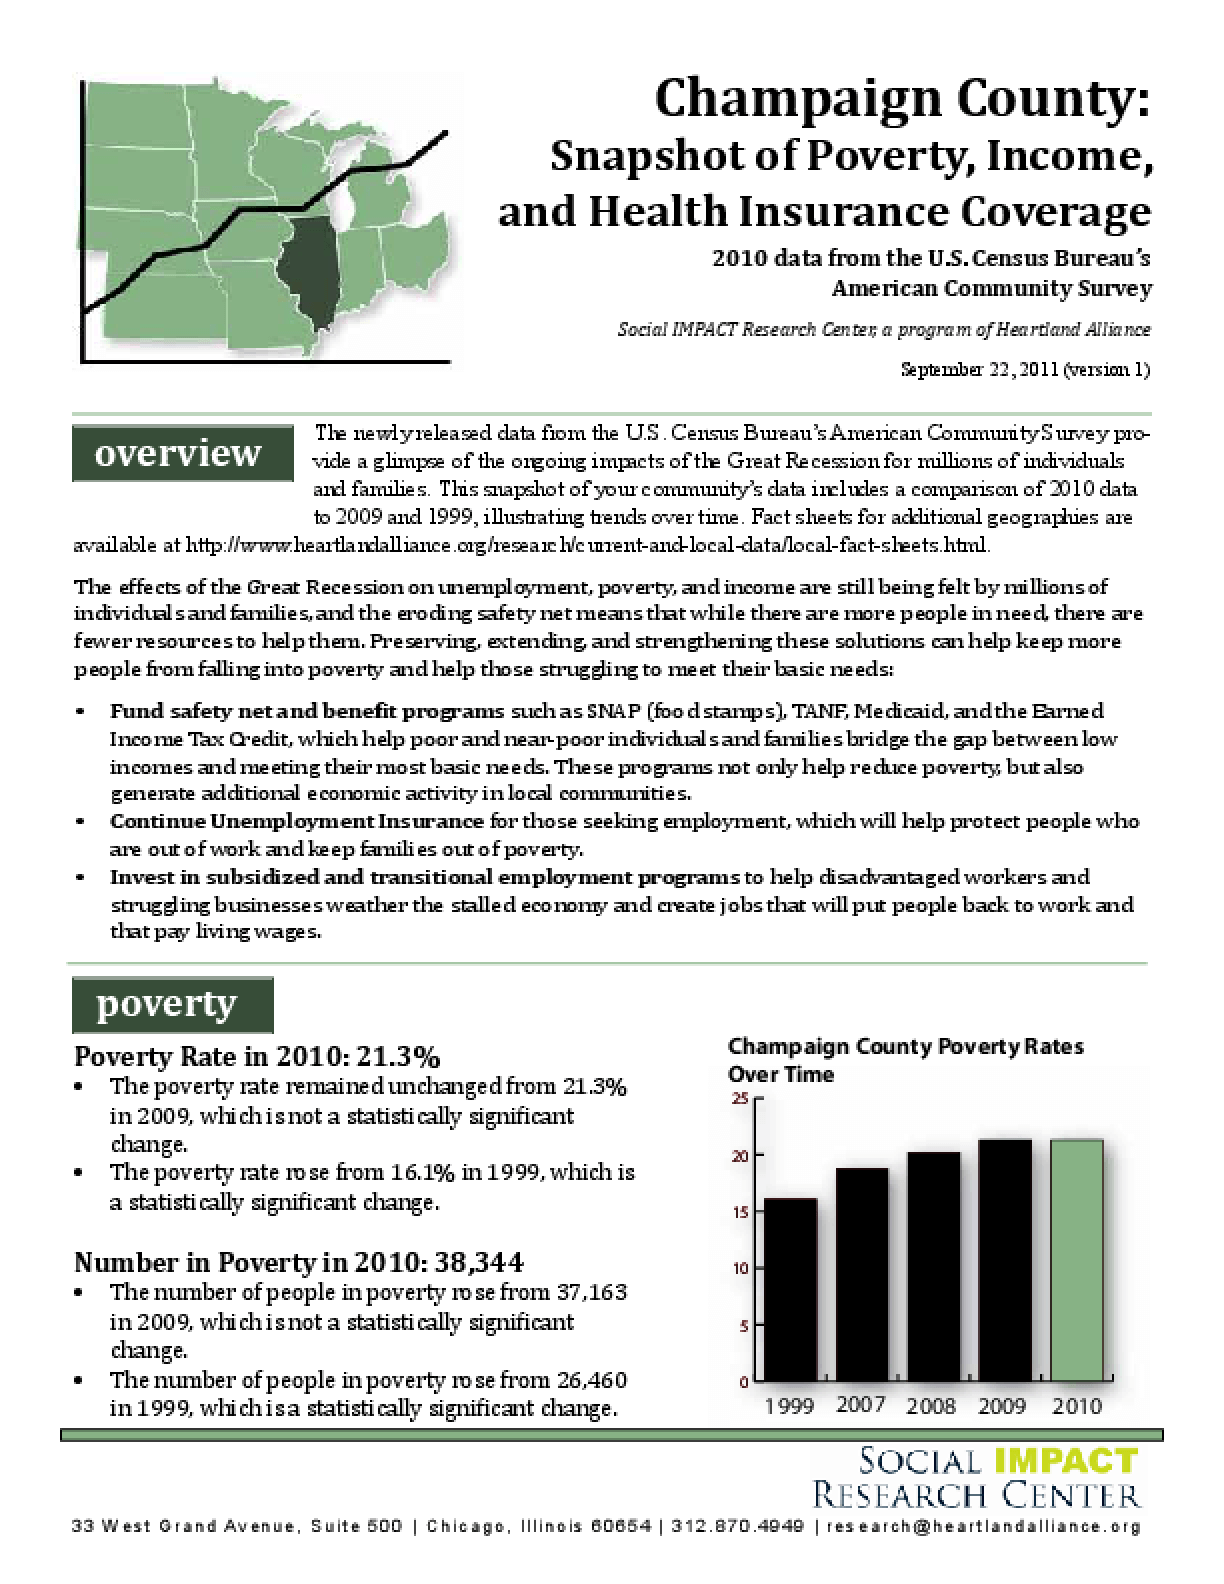 Champaign County: Snapshot of Poverty, Income, and Health Insurance Coverage